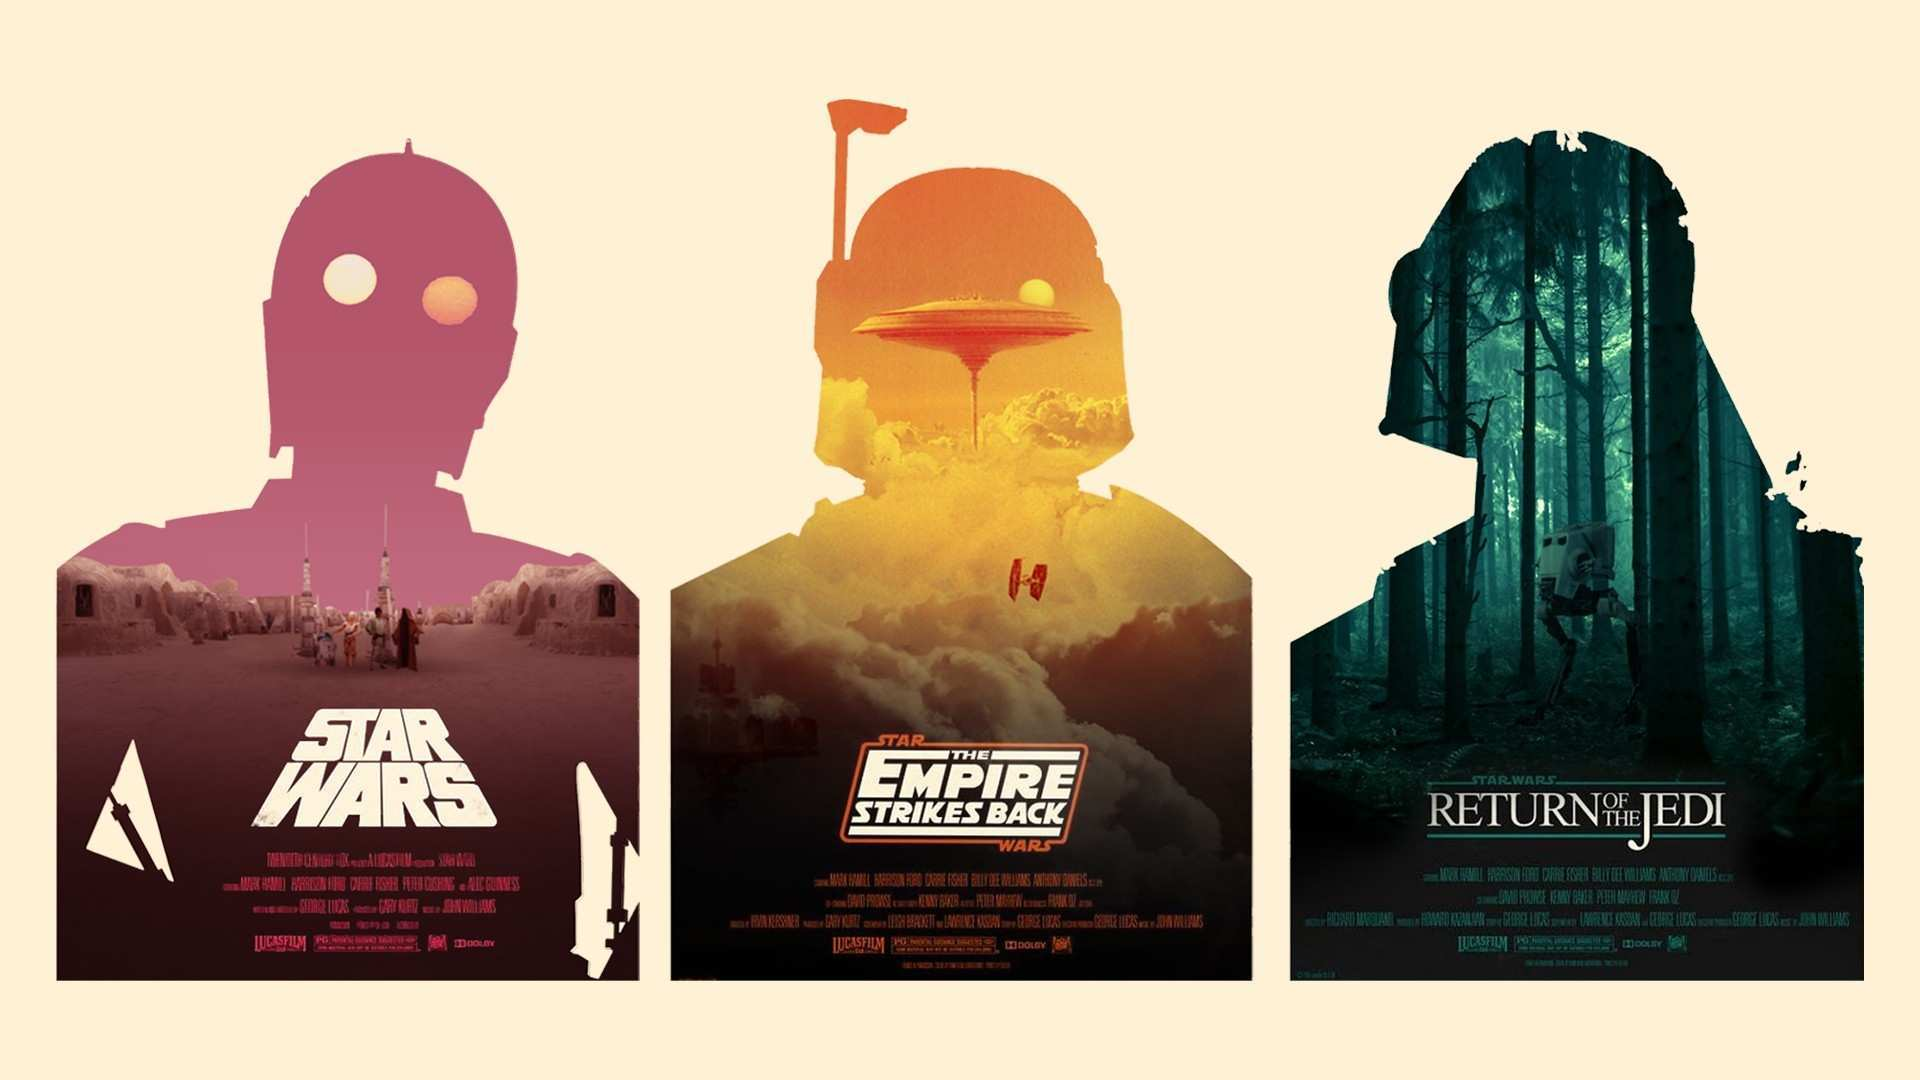 I recreated Olly Moss iconic Star Wars posters as if they were